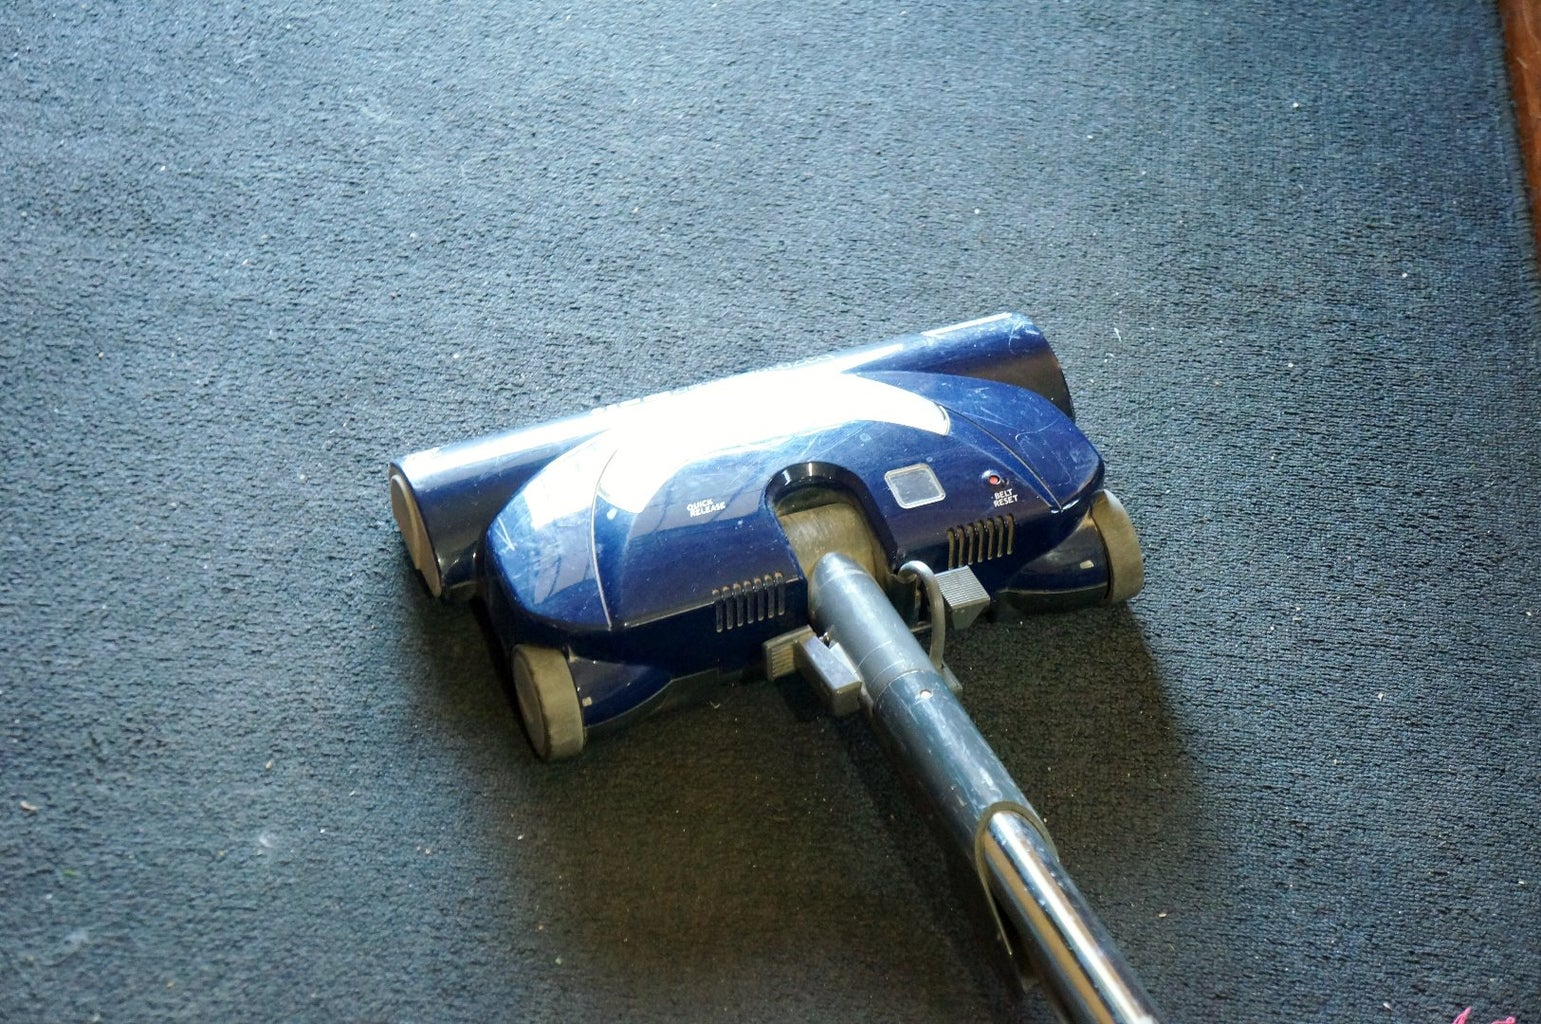 Tools and Cleaning Supplies